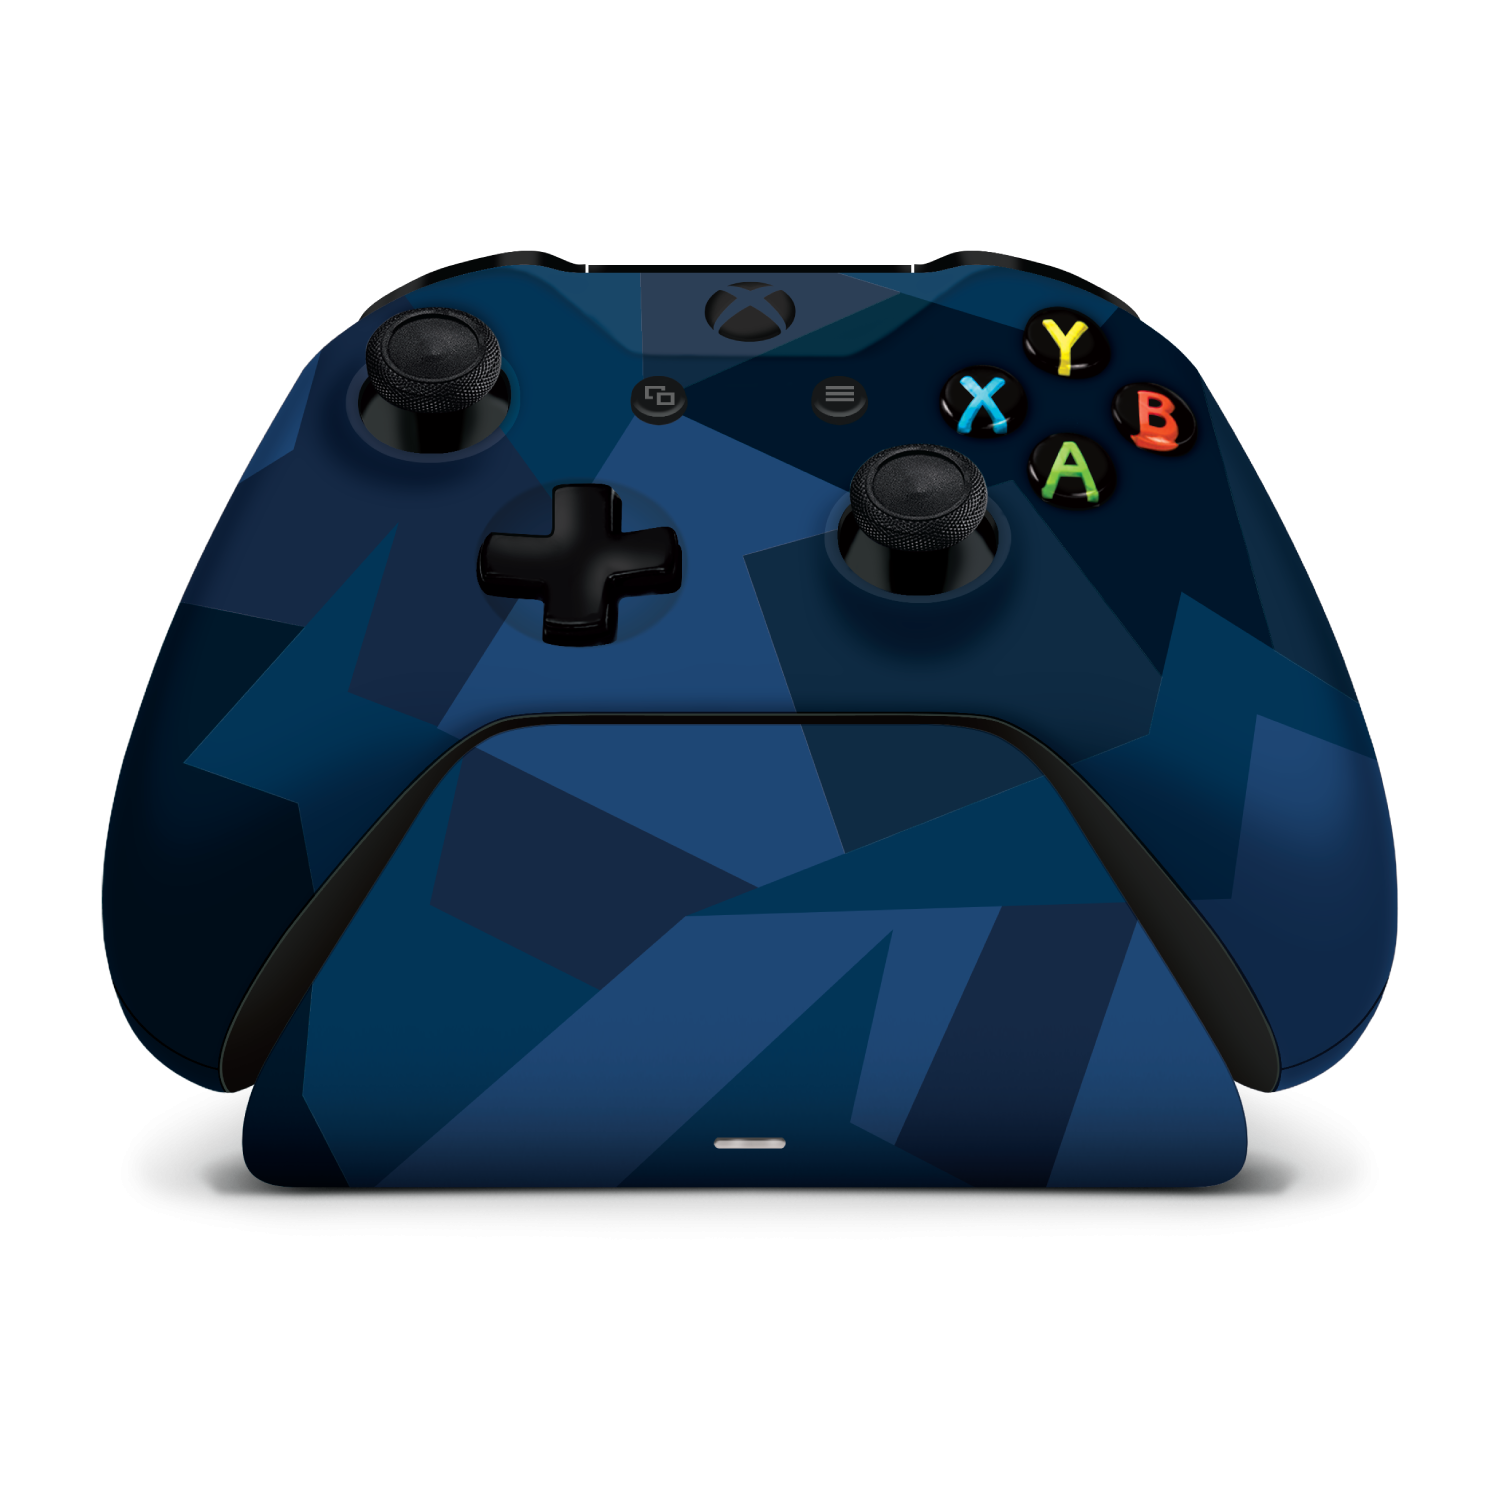 Xbox Pro Controller Charging Stand with a Midnight Forces Special Edition Design, Image 1